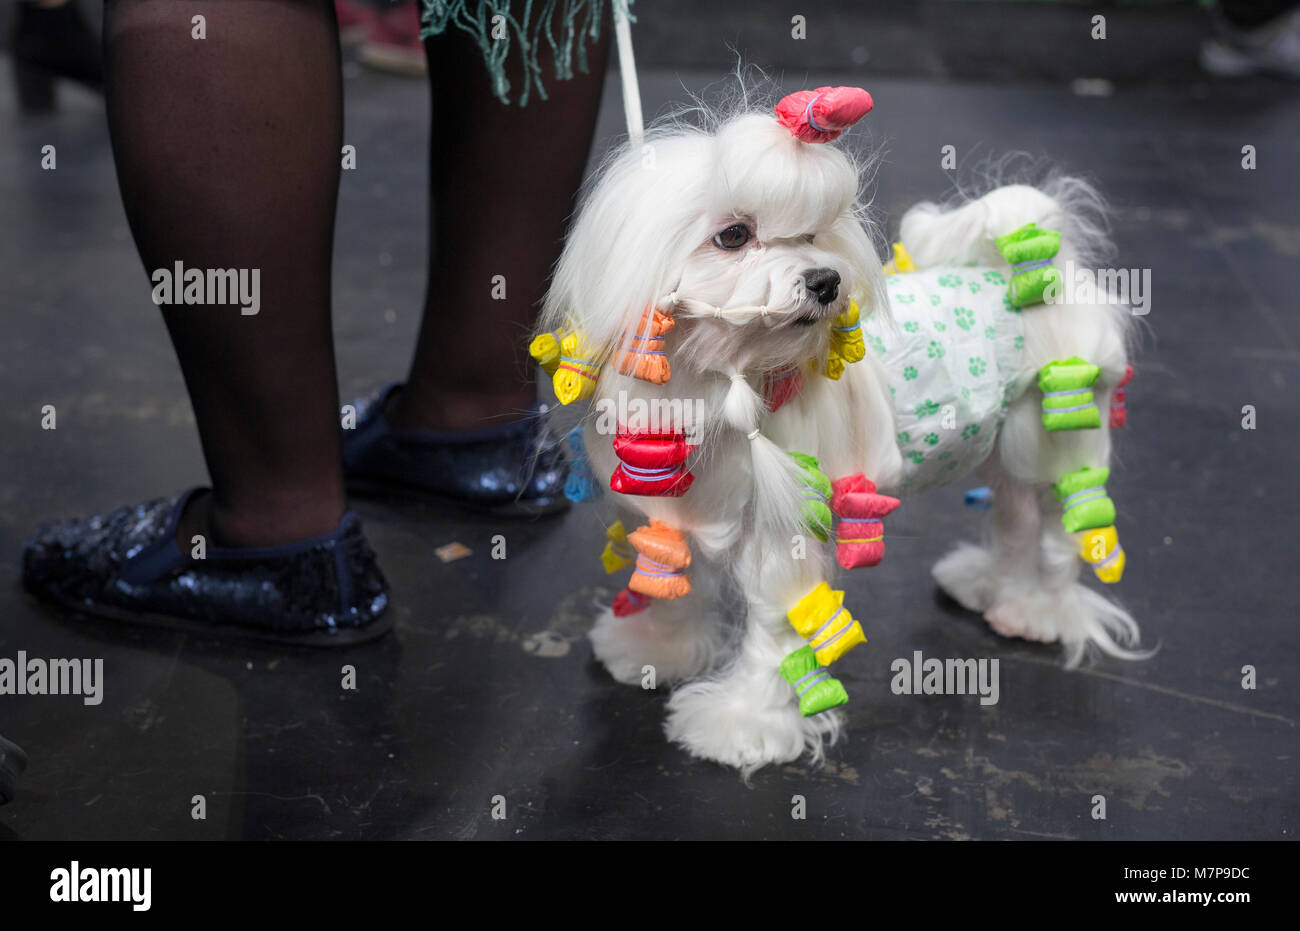 A Maltese prepared for the judging ring at Crufts, the worlds largest dog show. It takes place every year in Birmingham, - Stock Image